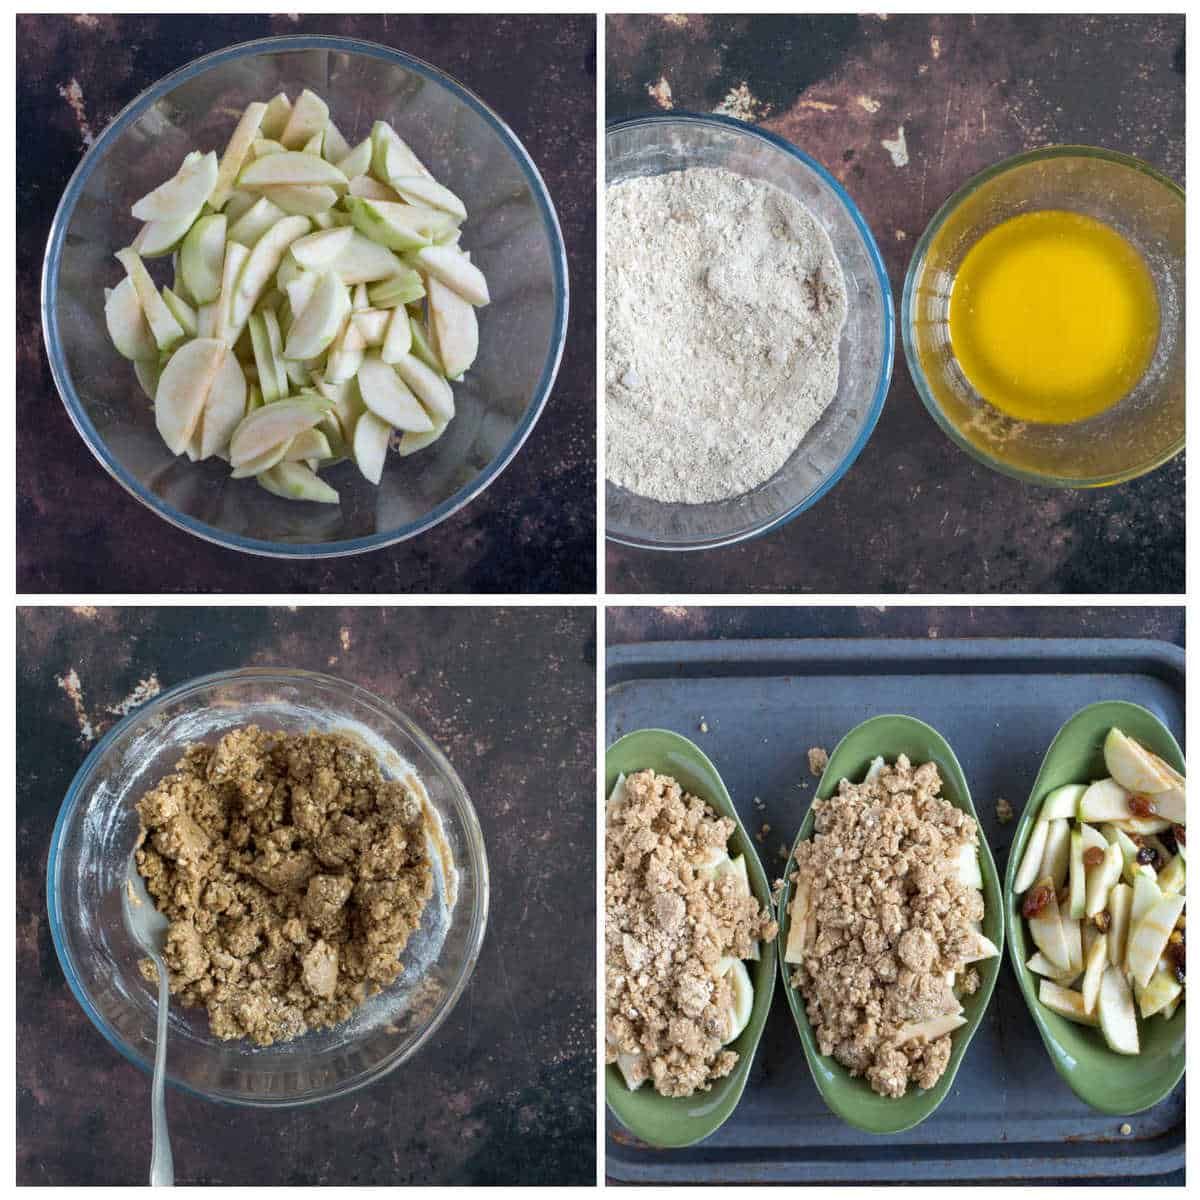 Step by step photo instructions for making the apple and mincemeat crumble.